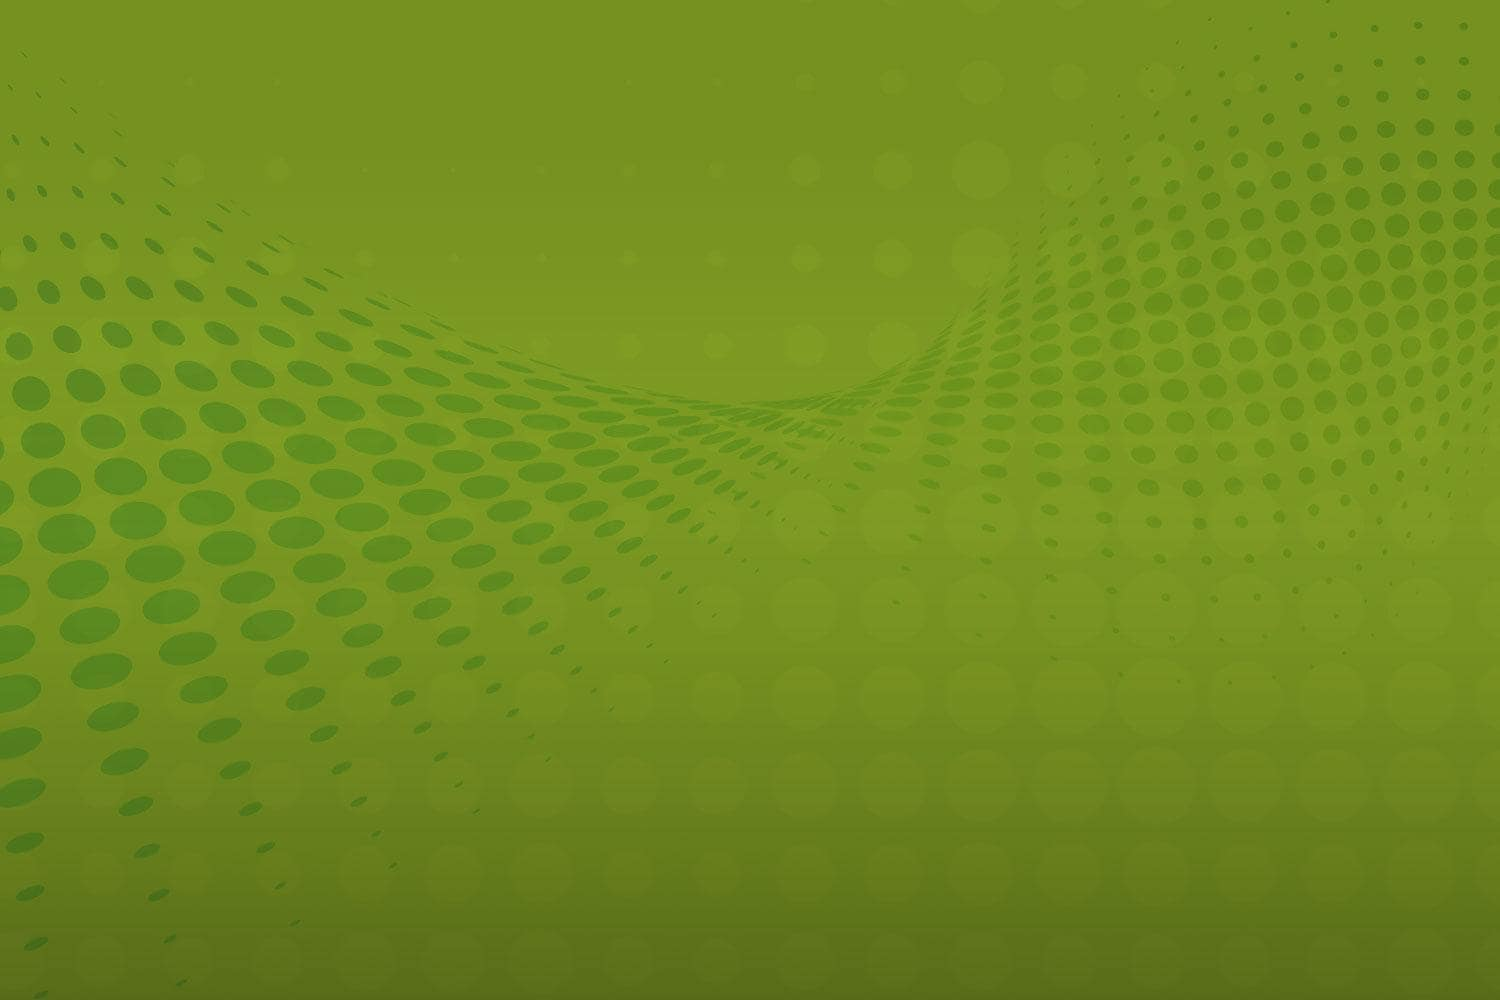 Backgrounds 84A1005, Lime Green Abstract art